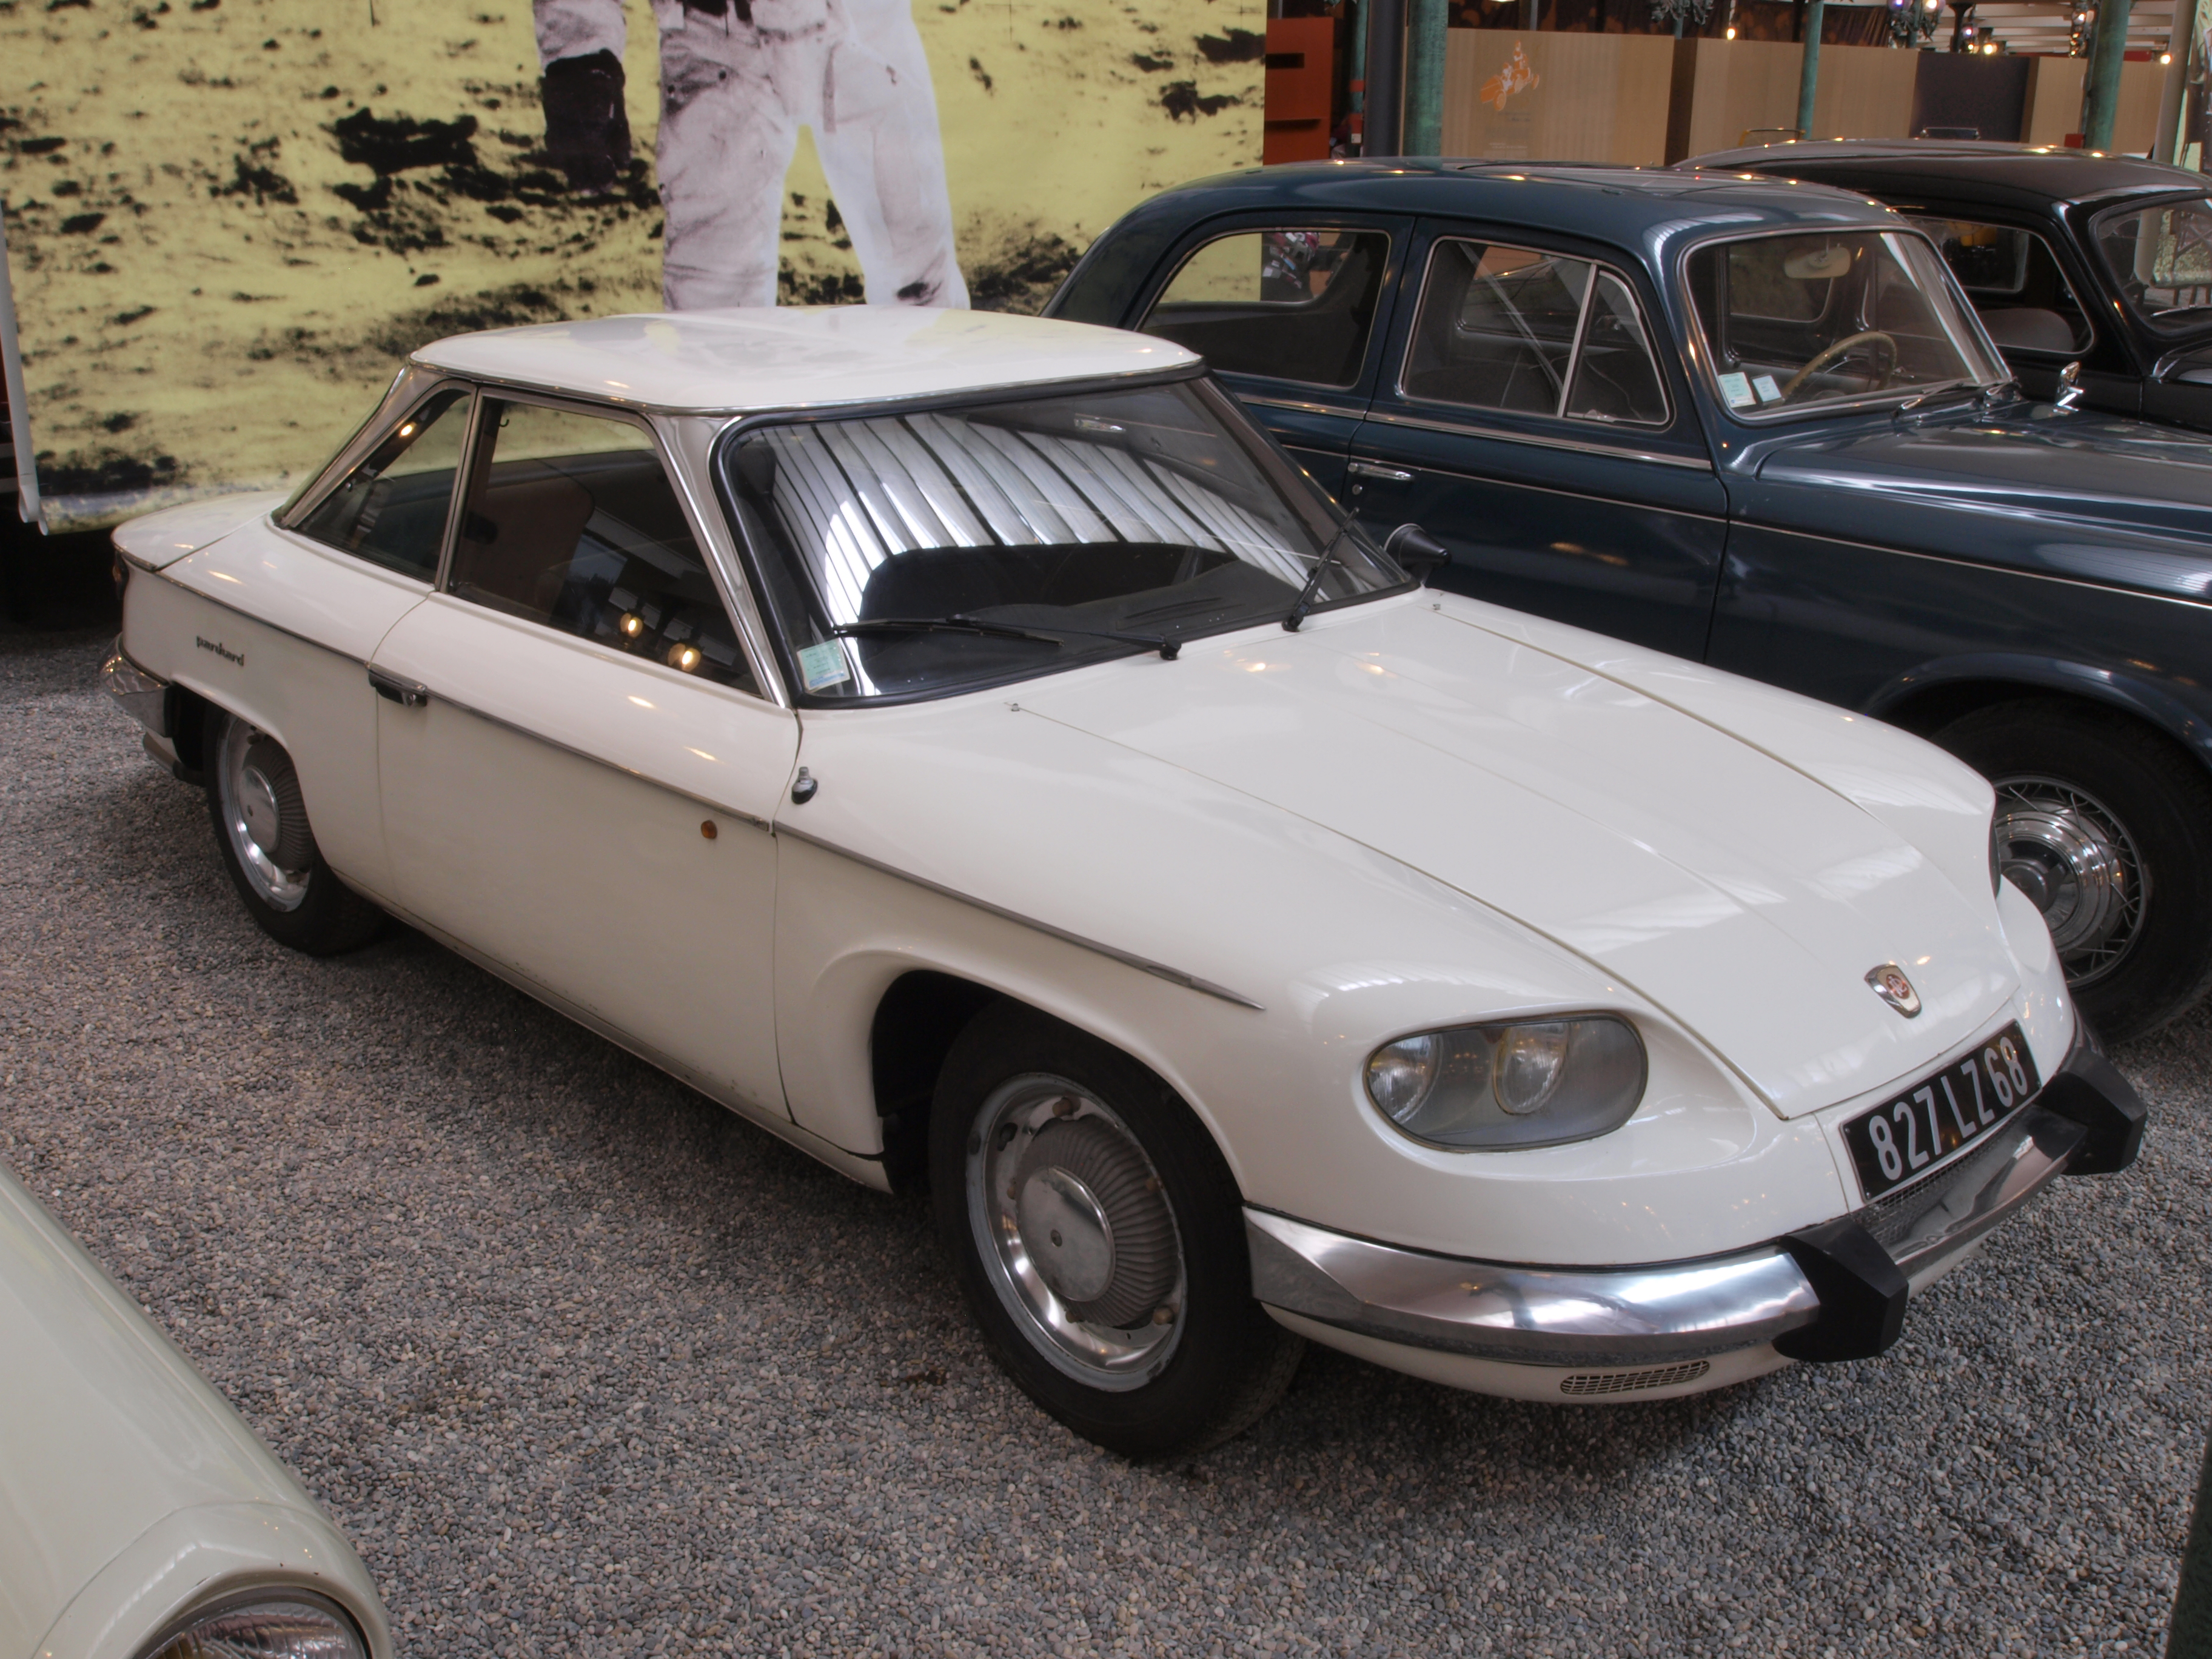 file panhard levassor 24ct 1964 pic1 jpg wikimedia commons. Black Bedroom Furniture Sets. Home Design Ideas